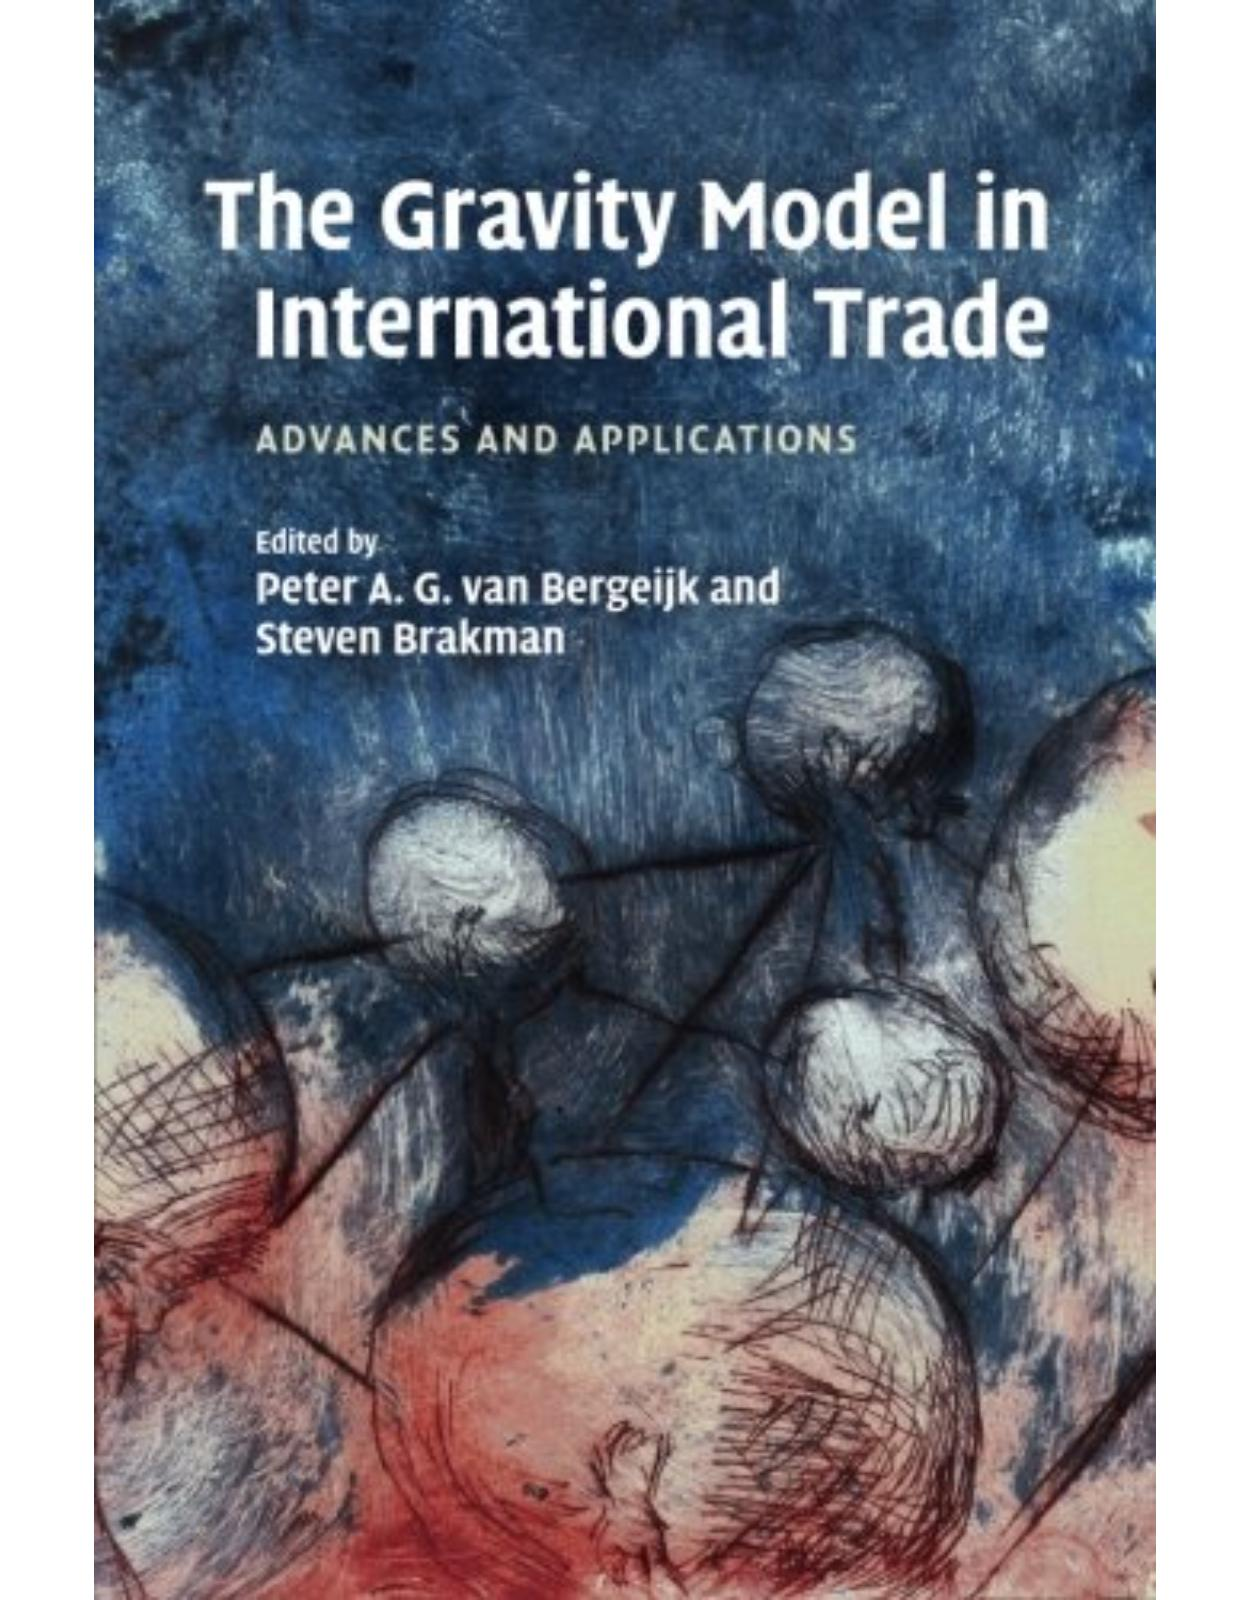 The Gravity Model in International Trade: Advances and Applications